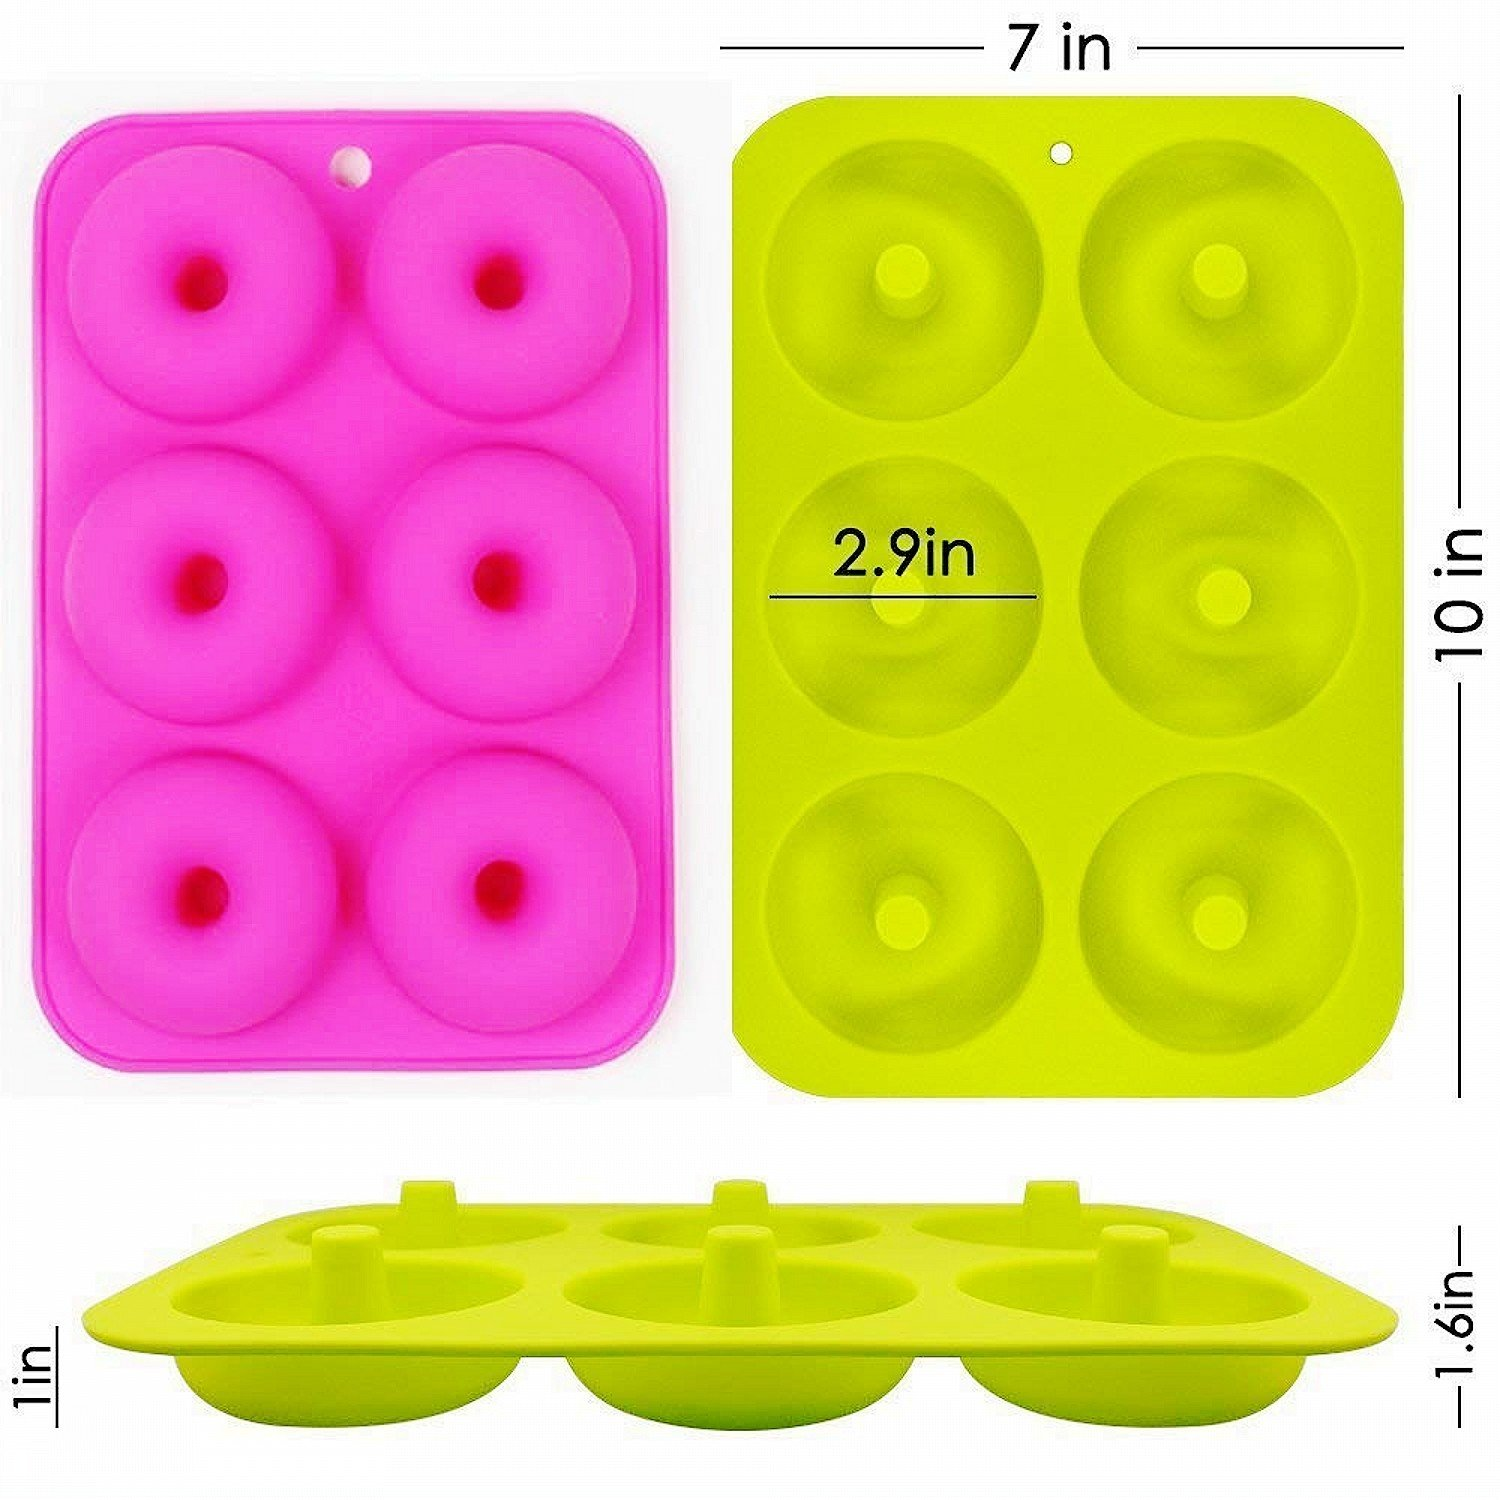 OKSANO 3 Pack Donut Molds, Silicon Cake Mold 6 Cavity Non-Stick Safe Baking Tray Maker Pan Heat Resistance for Cake Biscuit Bagels Muffins-Orange, Rose Red, Green by OKSANO (Image #3)